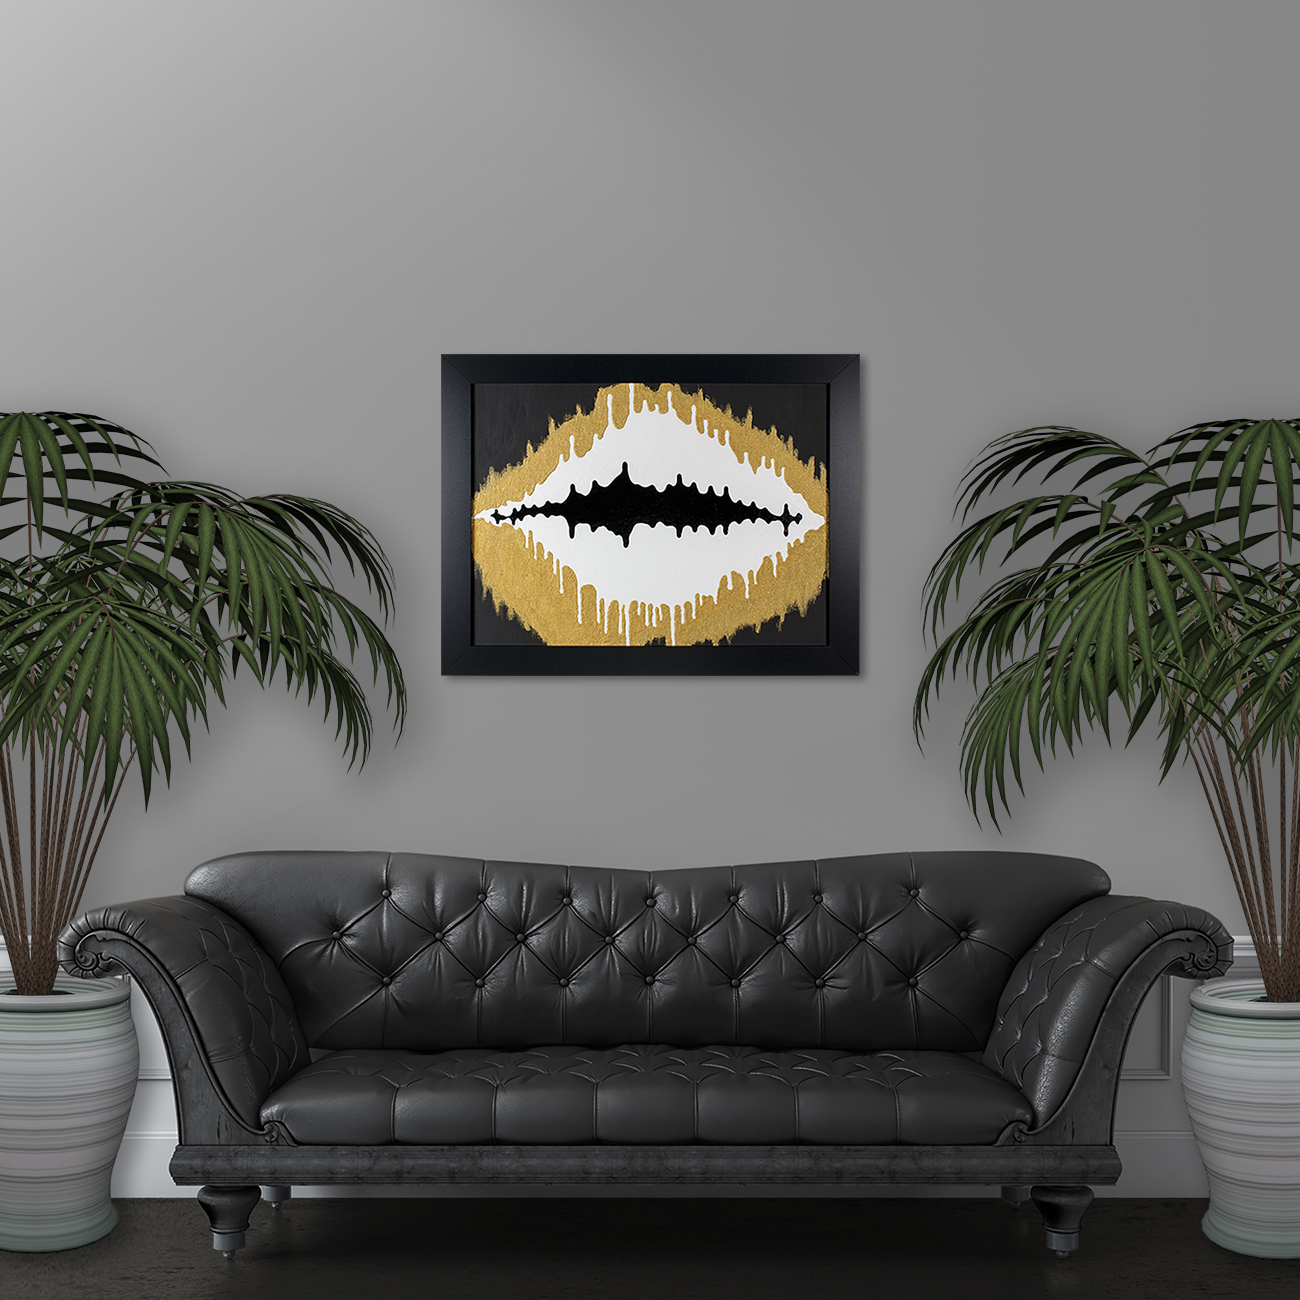 Wave Pattern - Gold and Black Mixed Media Painting by Heather Miller, WhiteRosesArt